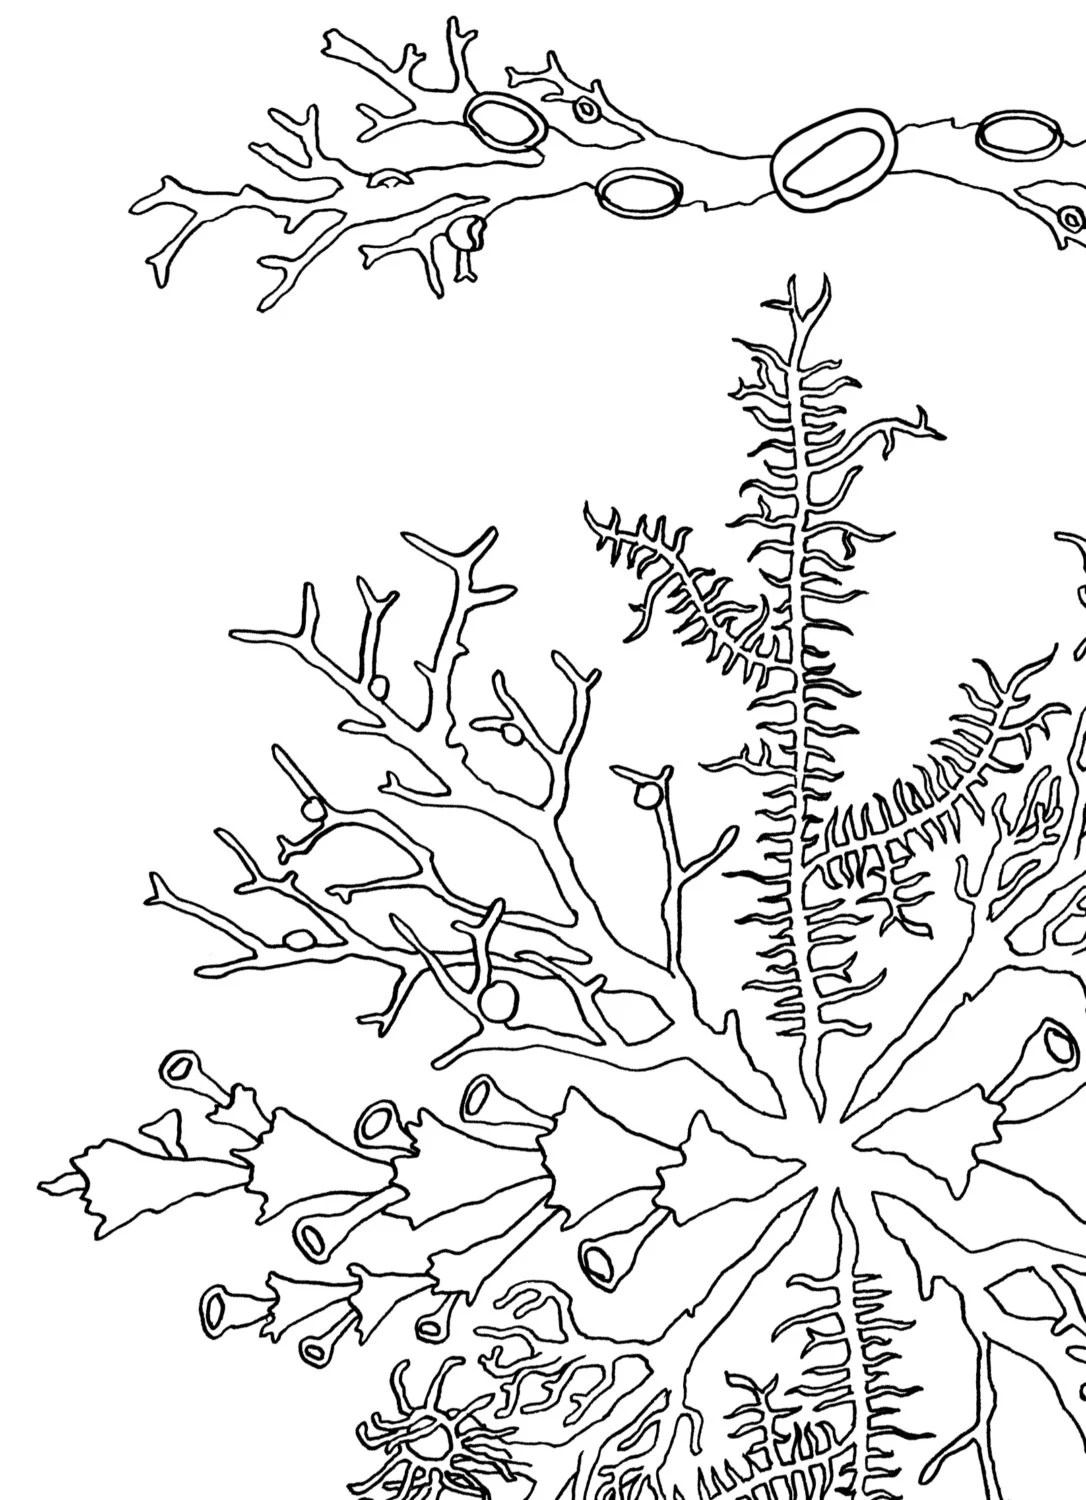 Coloring book; Love Your Lichen Colouring Sheets Printable